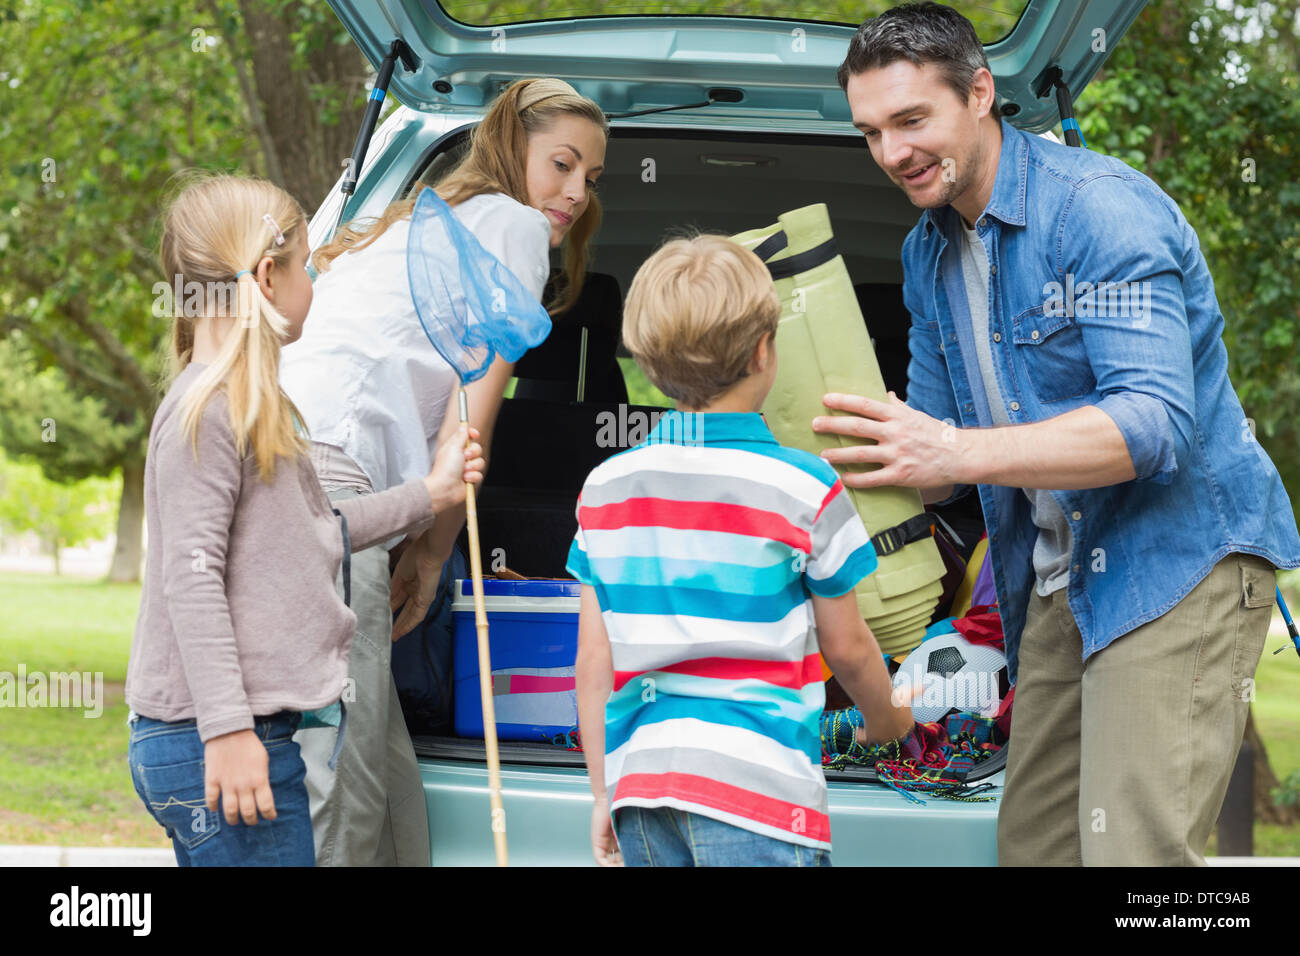 Family unloading car trunk while on picnic - Stock Image